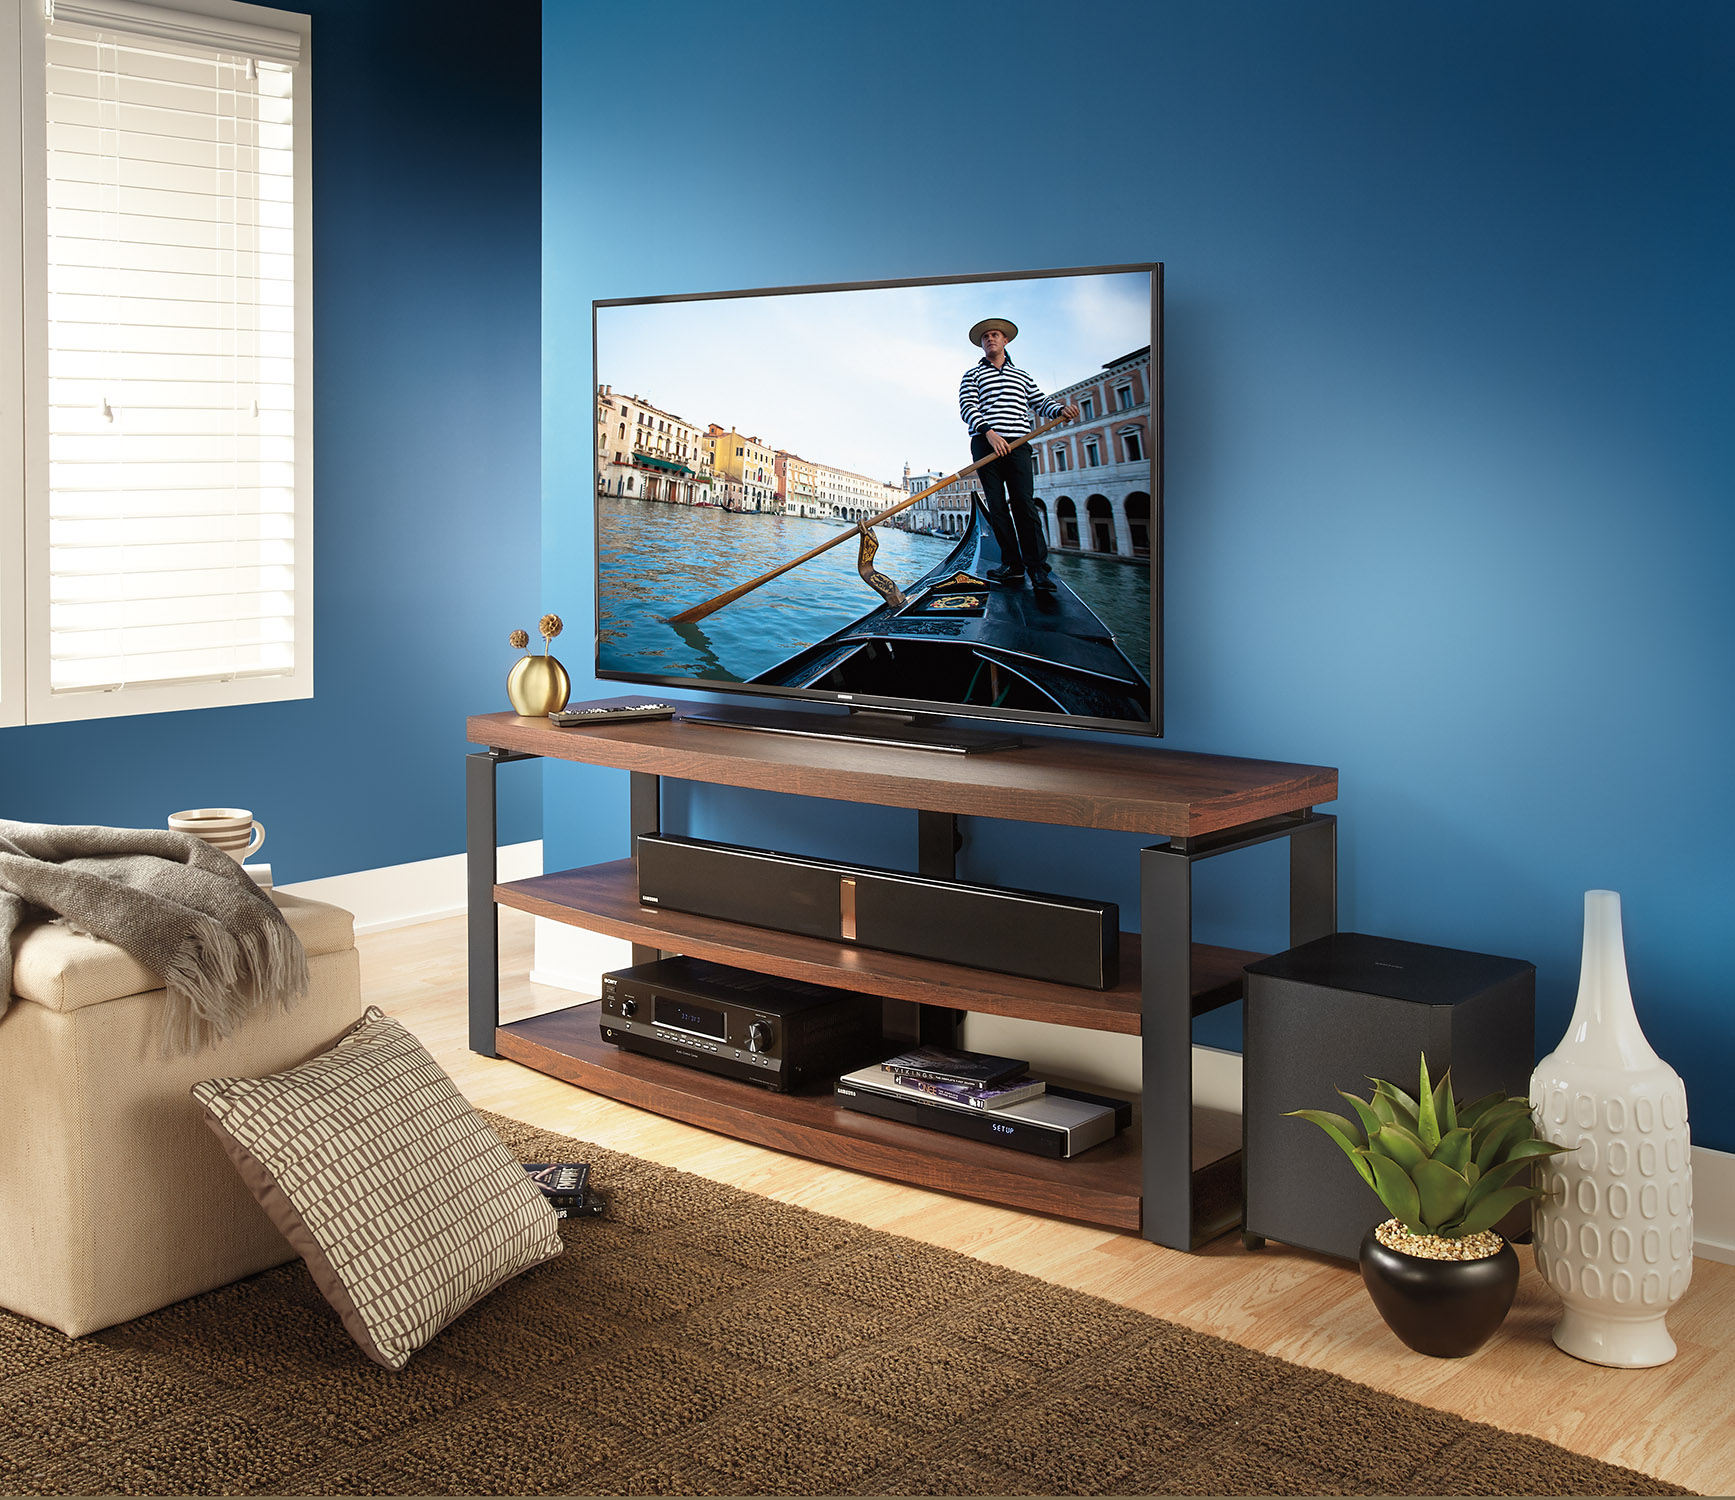 Energy Star products at Best Buy